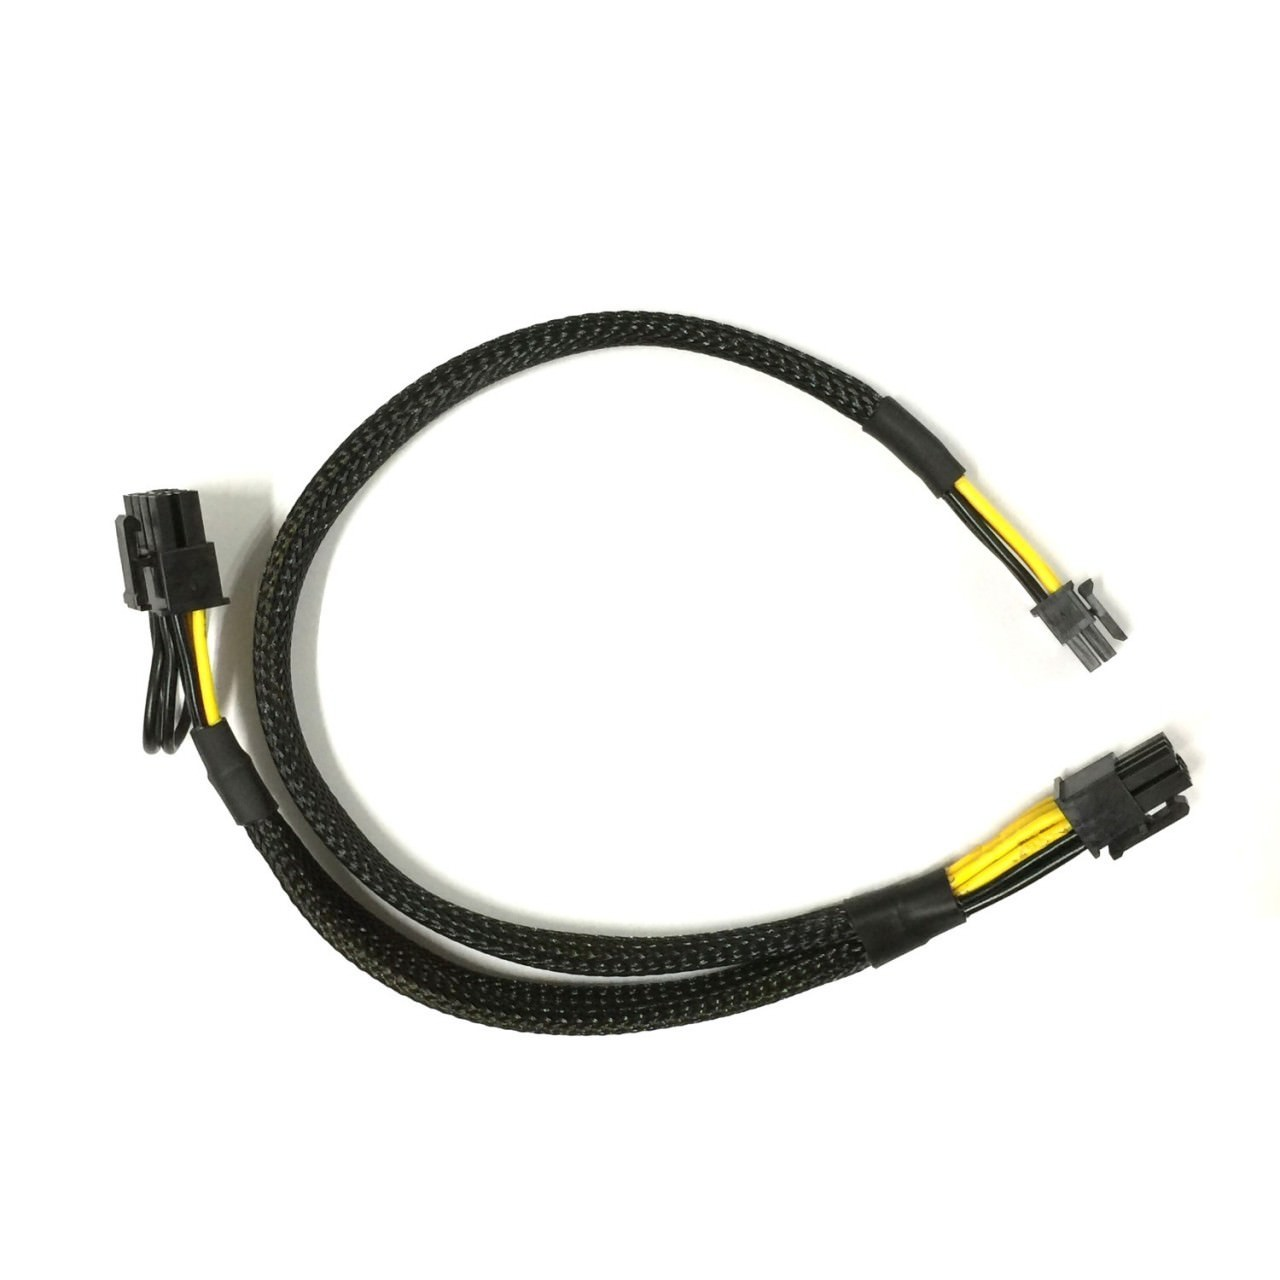 Dell Server R740 Mini 8 Pin to 8 Pin and 6 Pin GPU PCIE Power Cable